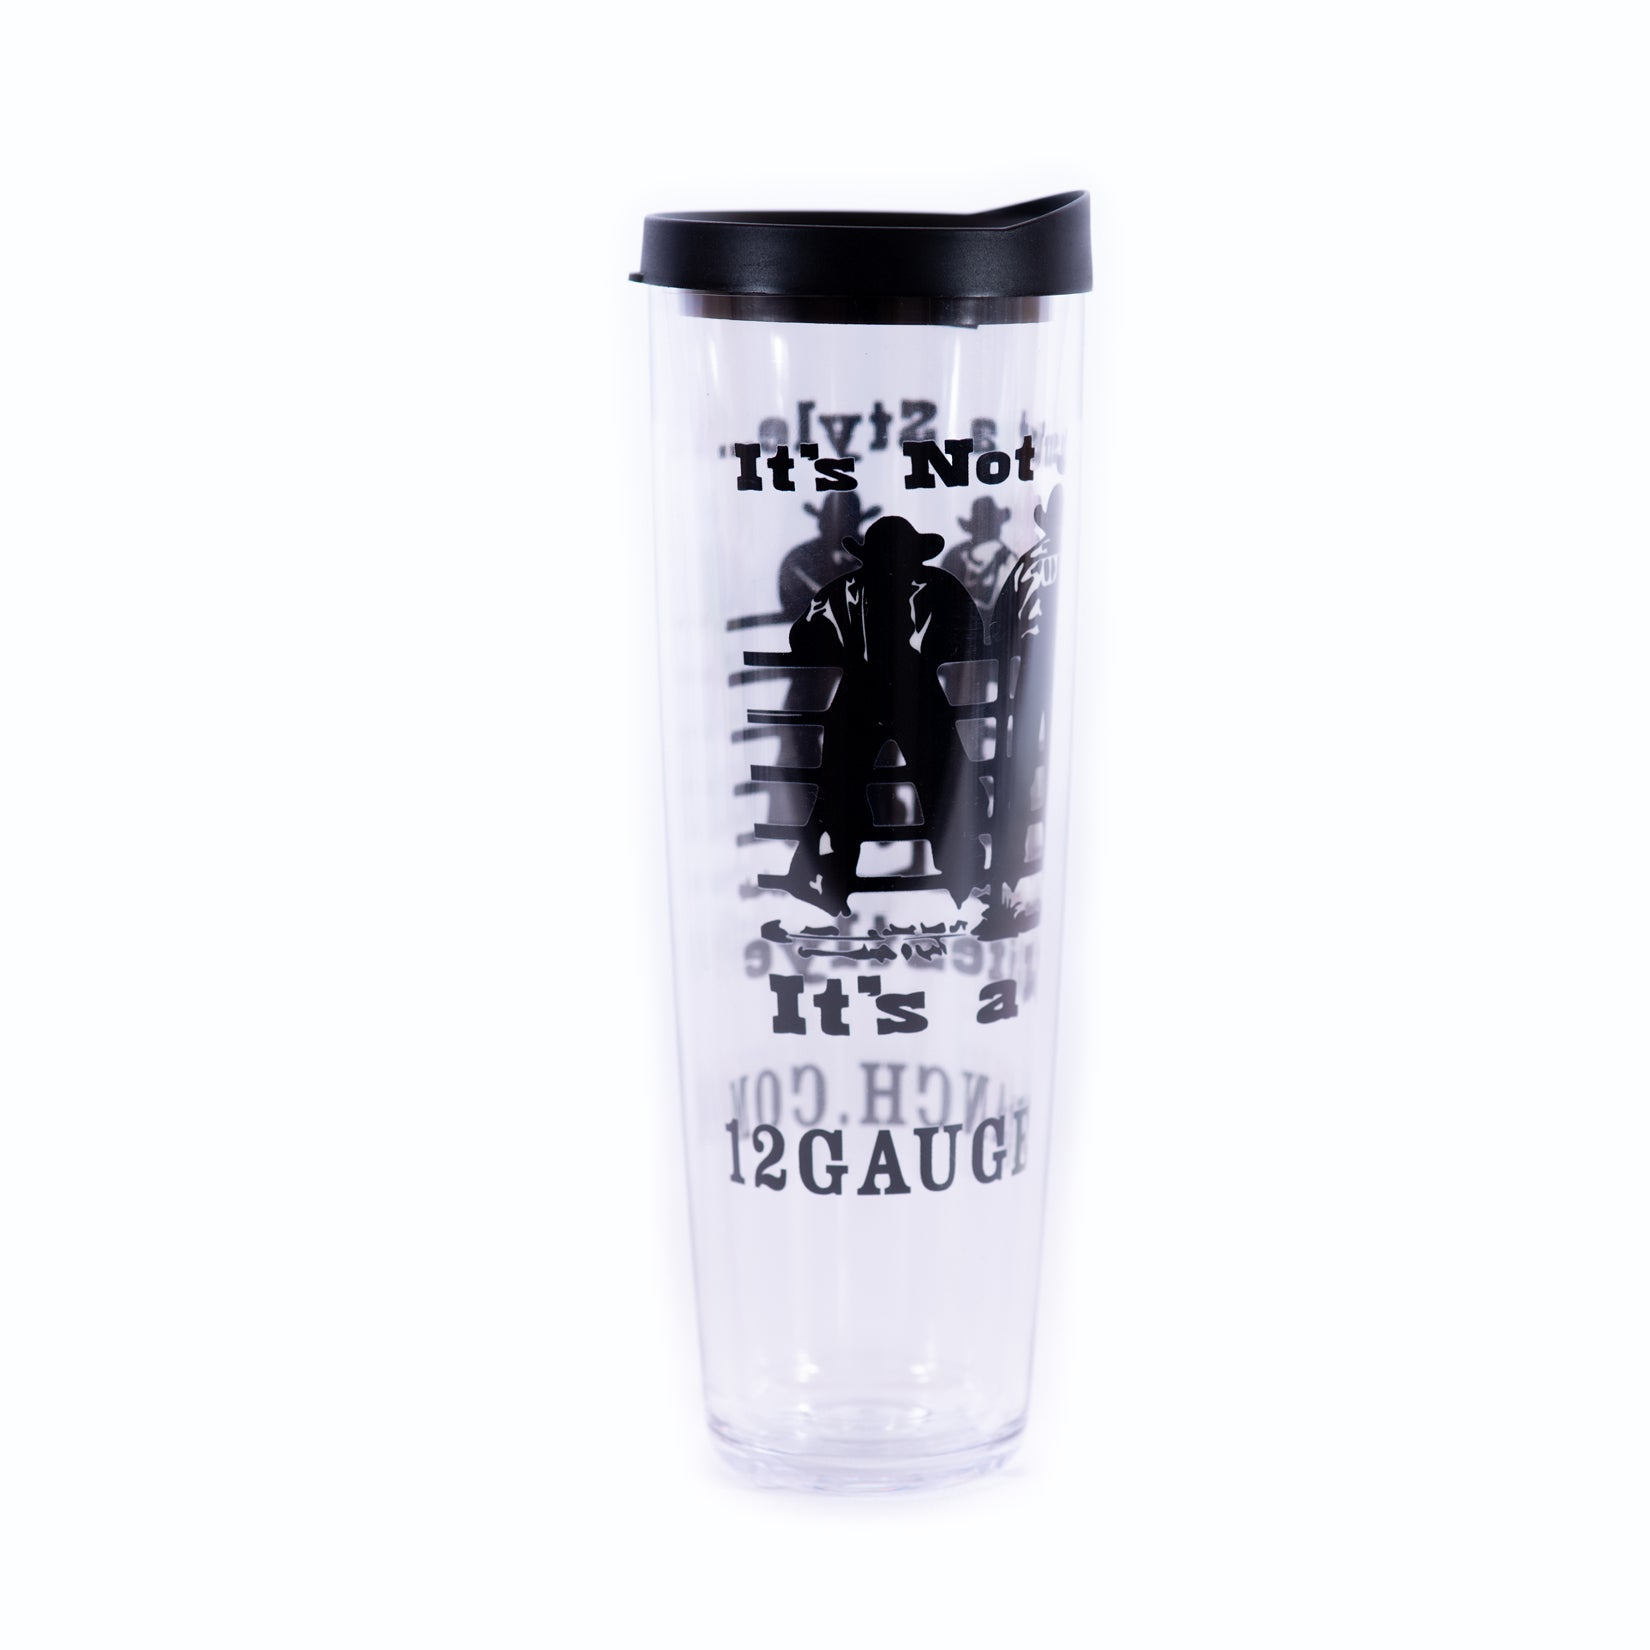 Cowboy Lifestyle 24oz Insulated Covo Cup, Accessories, 12 Gauge Ranch, 12 Gauge Ranch Ranch  12 Gauge Ranch